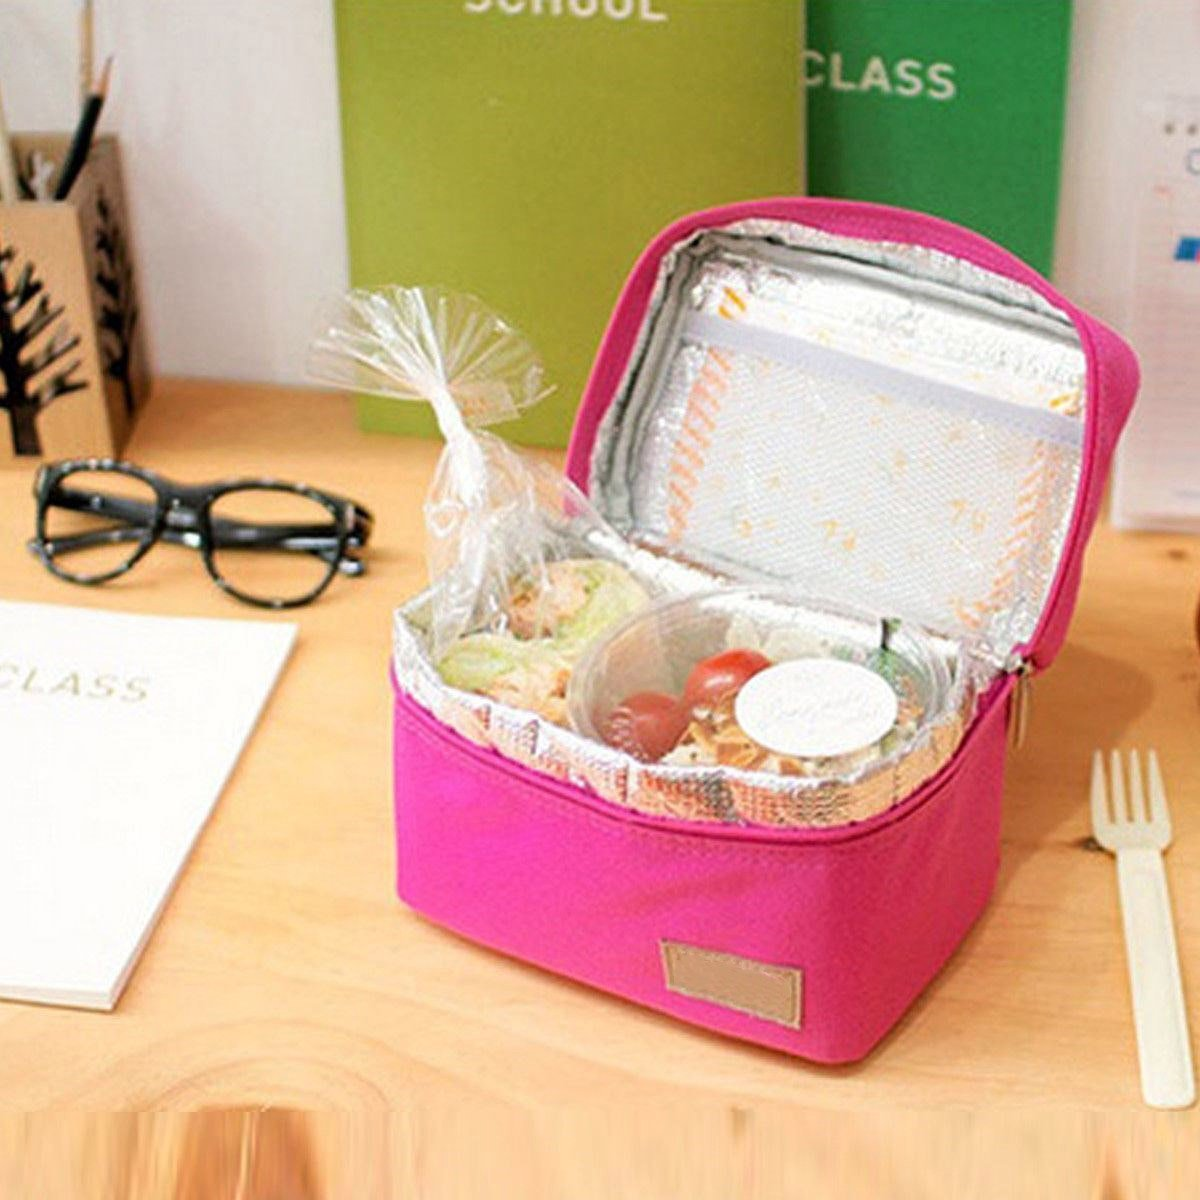 LAAT Thermal Insulation Lunch Pouch Picnic Box Portable Cooler Sacks Insulated Storage Container Picnic Tote Sacks Thicken Lunch Bag 5Coloors 778765